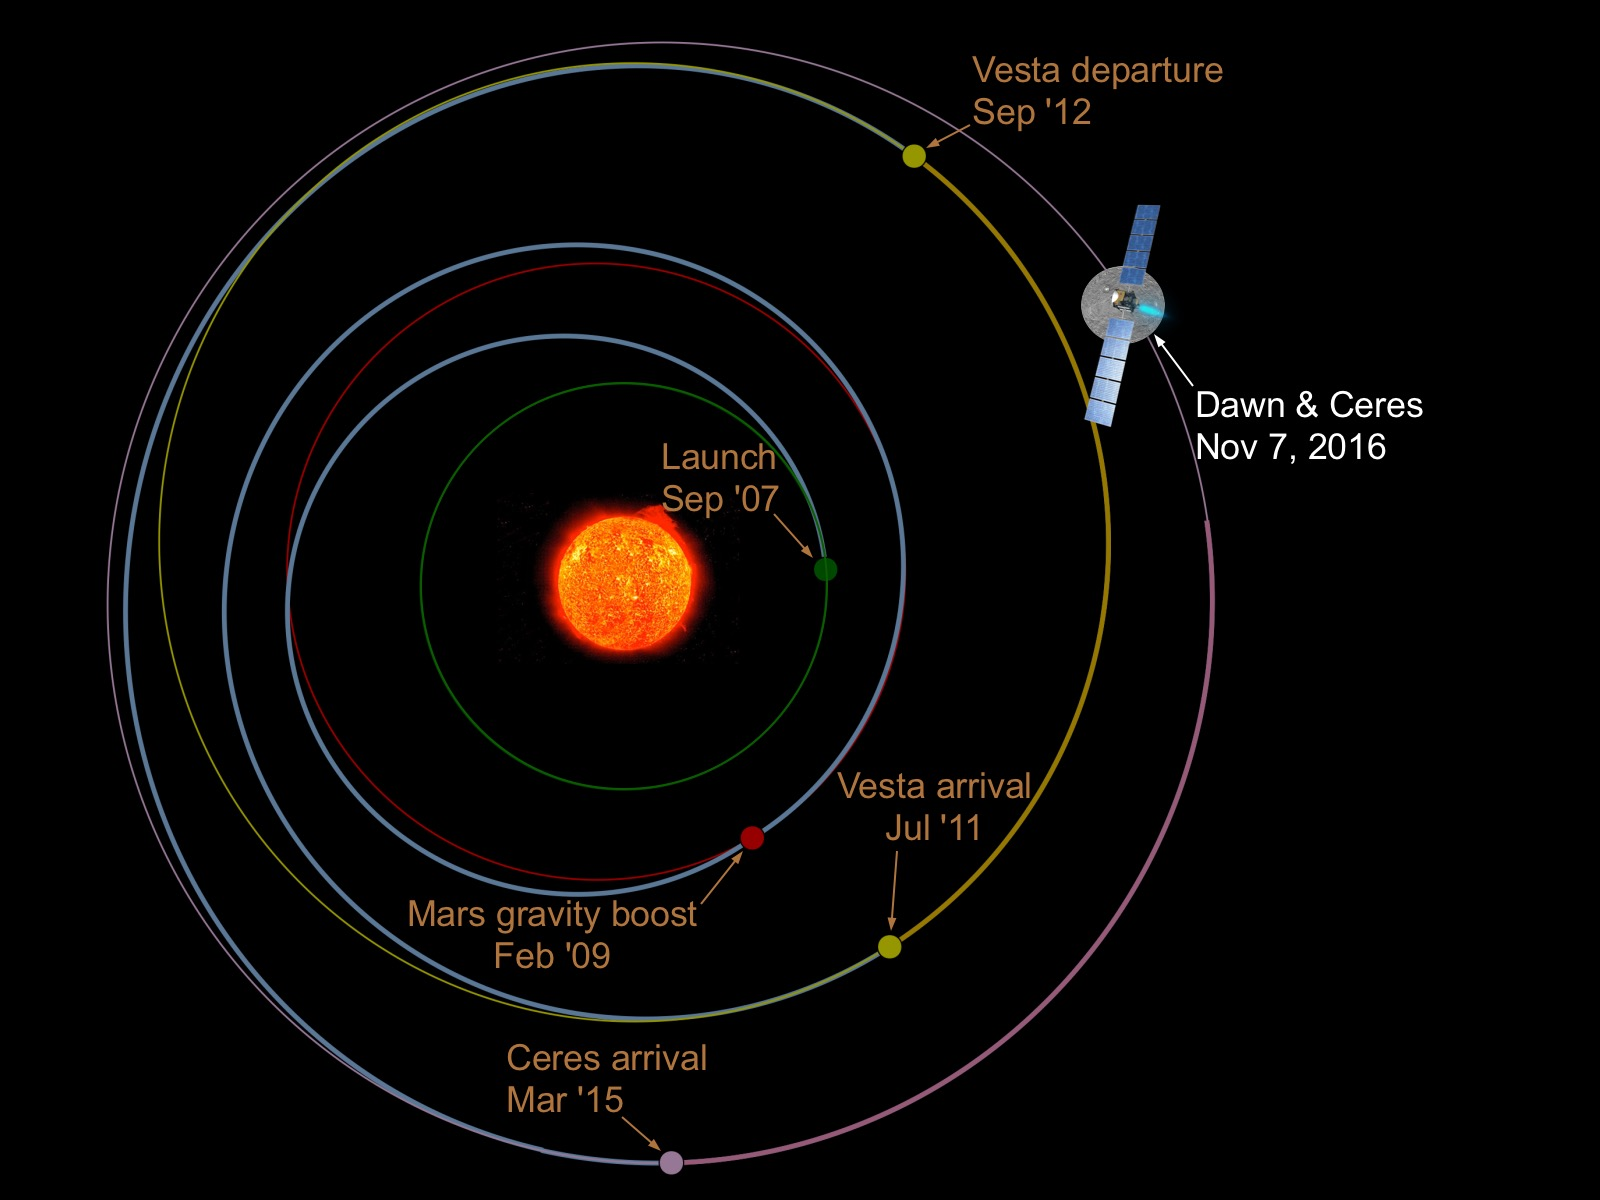 November trajectory dawn s location in the